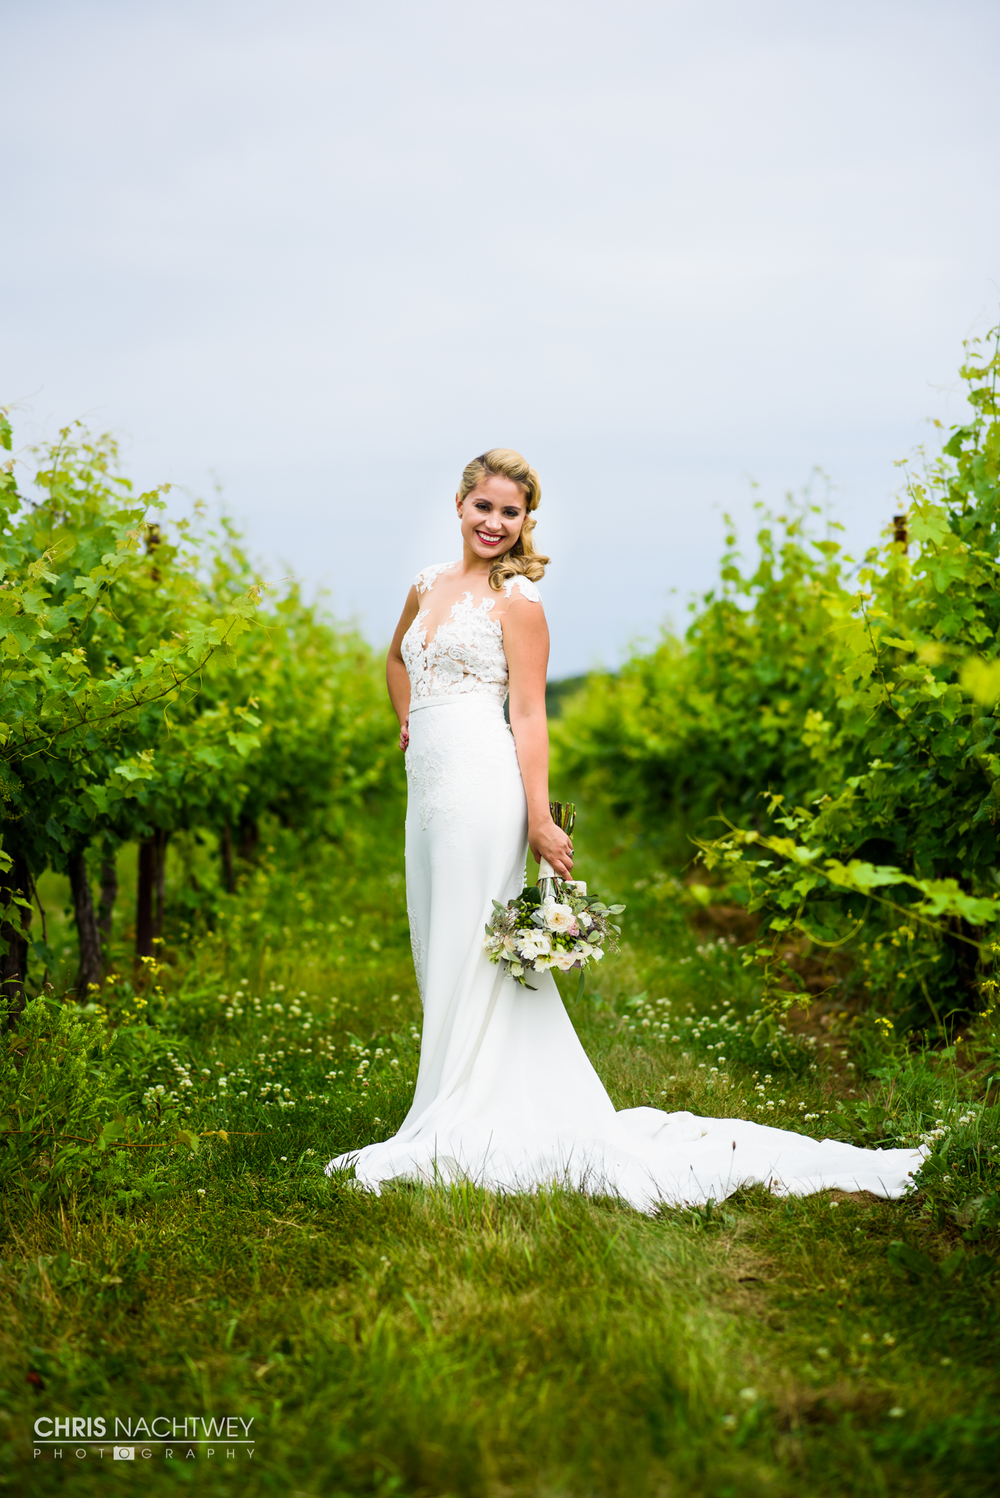 wedding-saltwater-farm-vineyard-photos-stonington-ct-chris-nachtwey-photography-2016-ana-austin-16.jpg